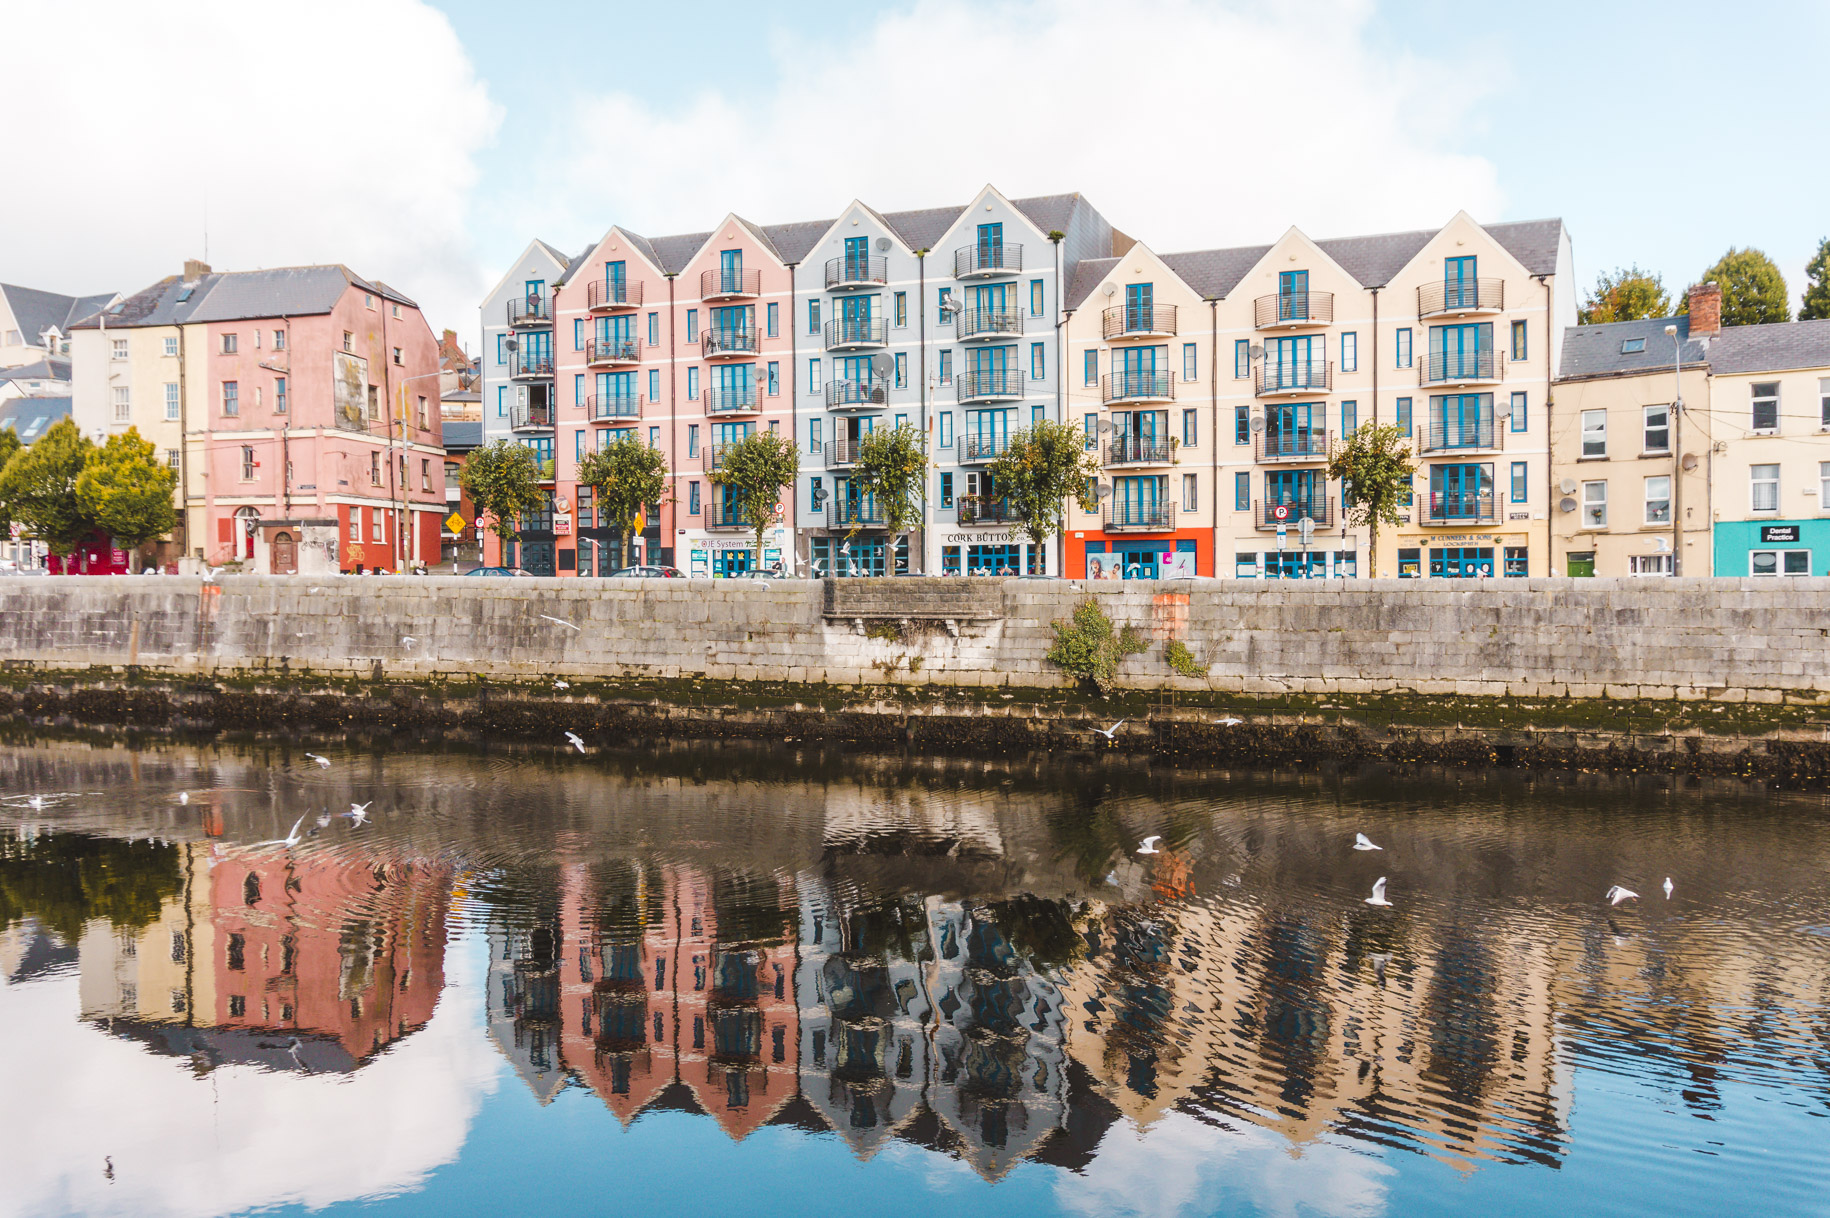 Pastel-coloured buildings reflected in Cork's River Lee. Cork Ireland, day trip from Dublin and a must-visit addition to any Europe itinerary.